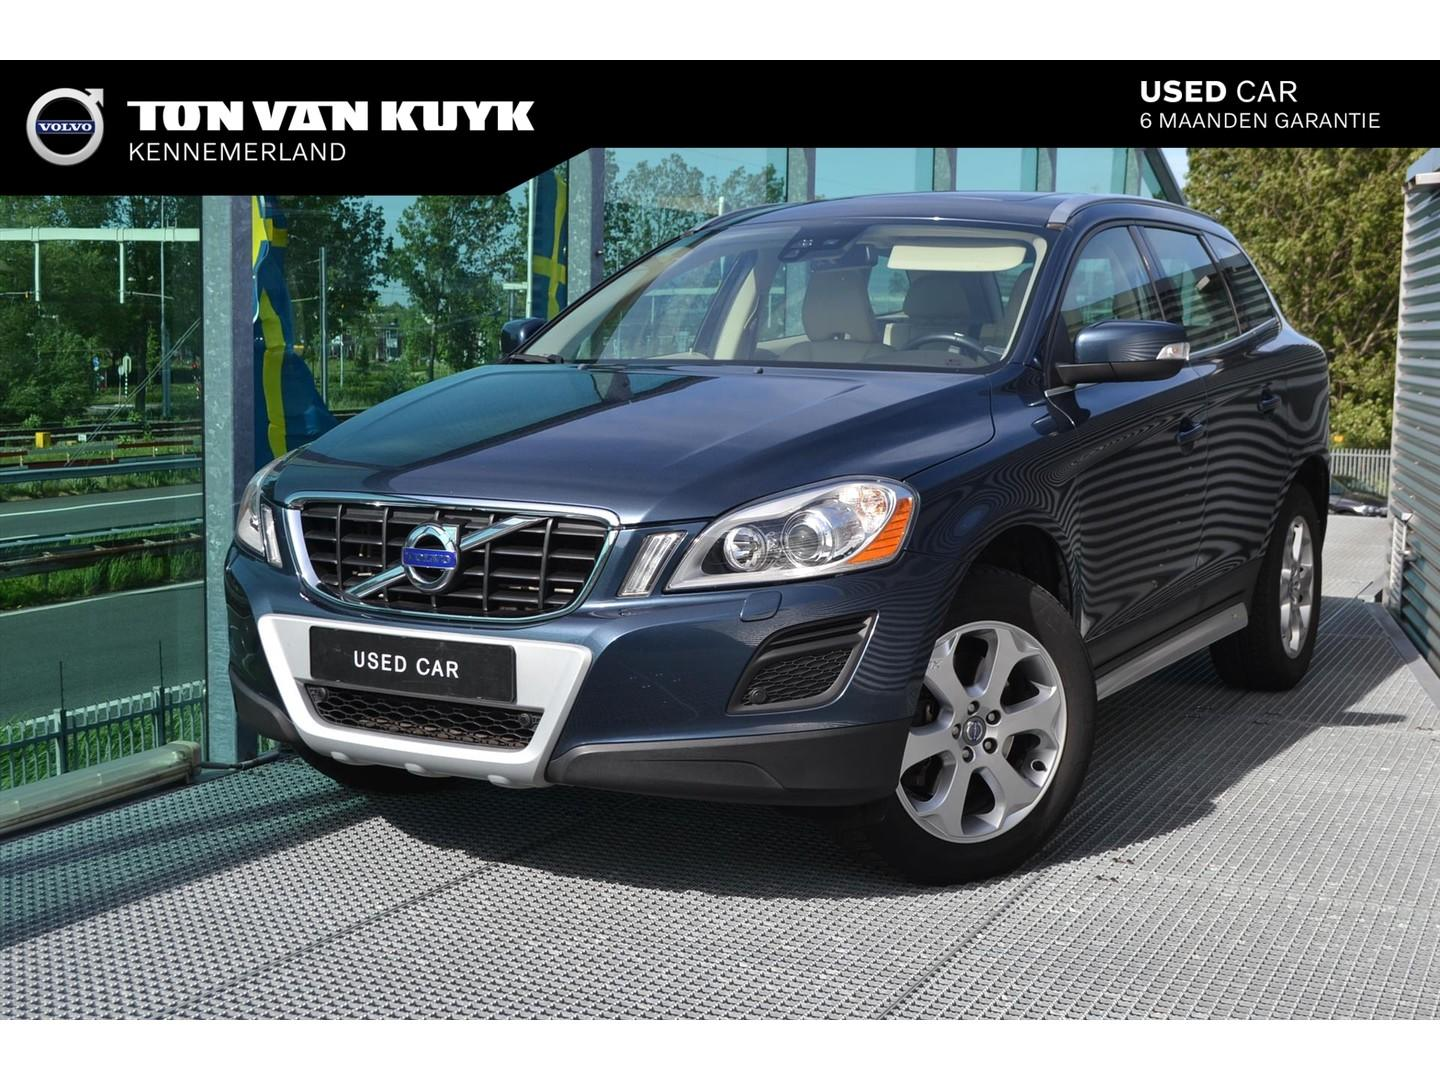 Volvo Xc60 2.0t aut summum / panoramadak / parkeer camera / trekhaak